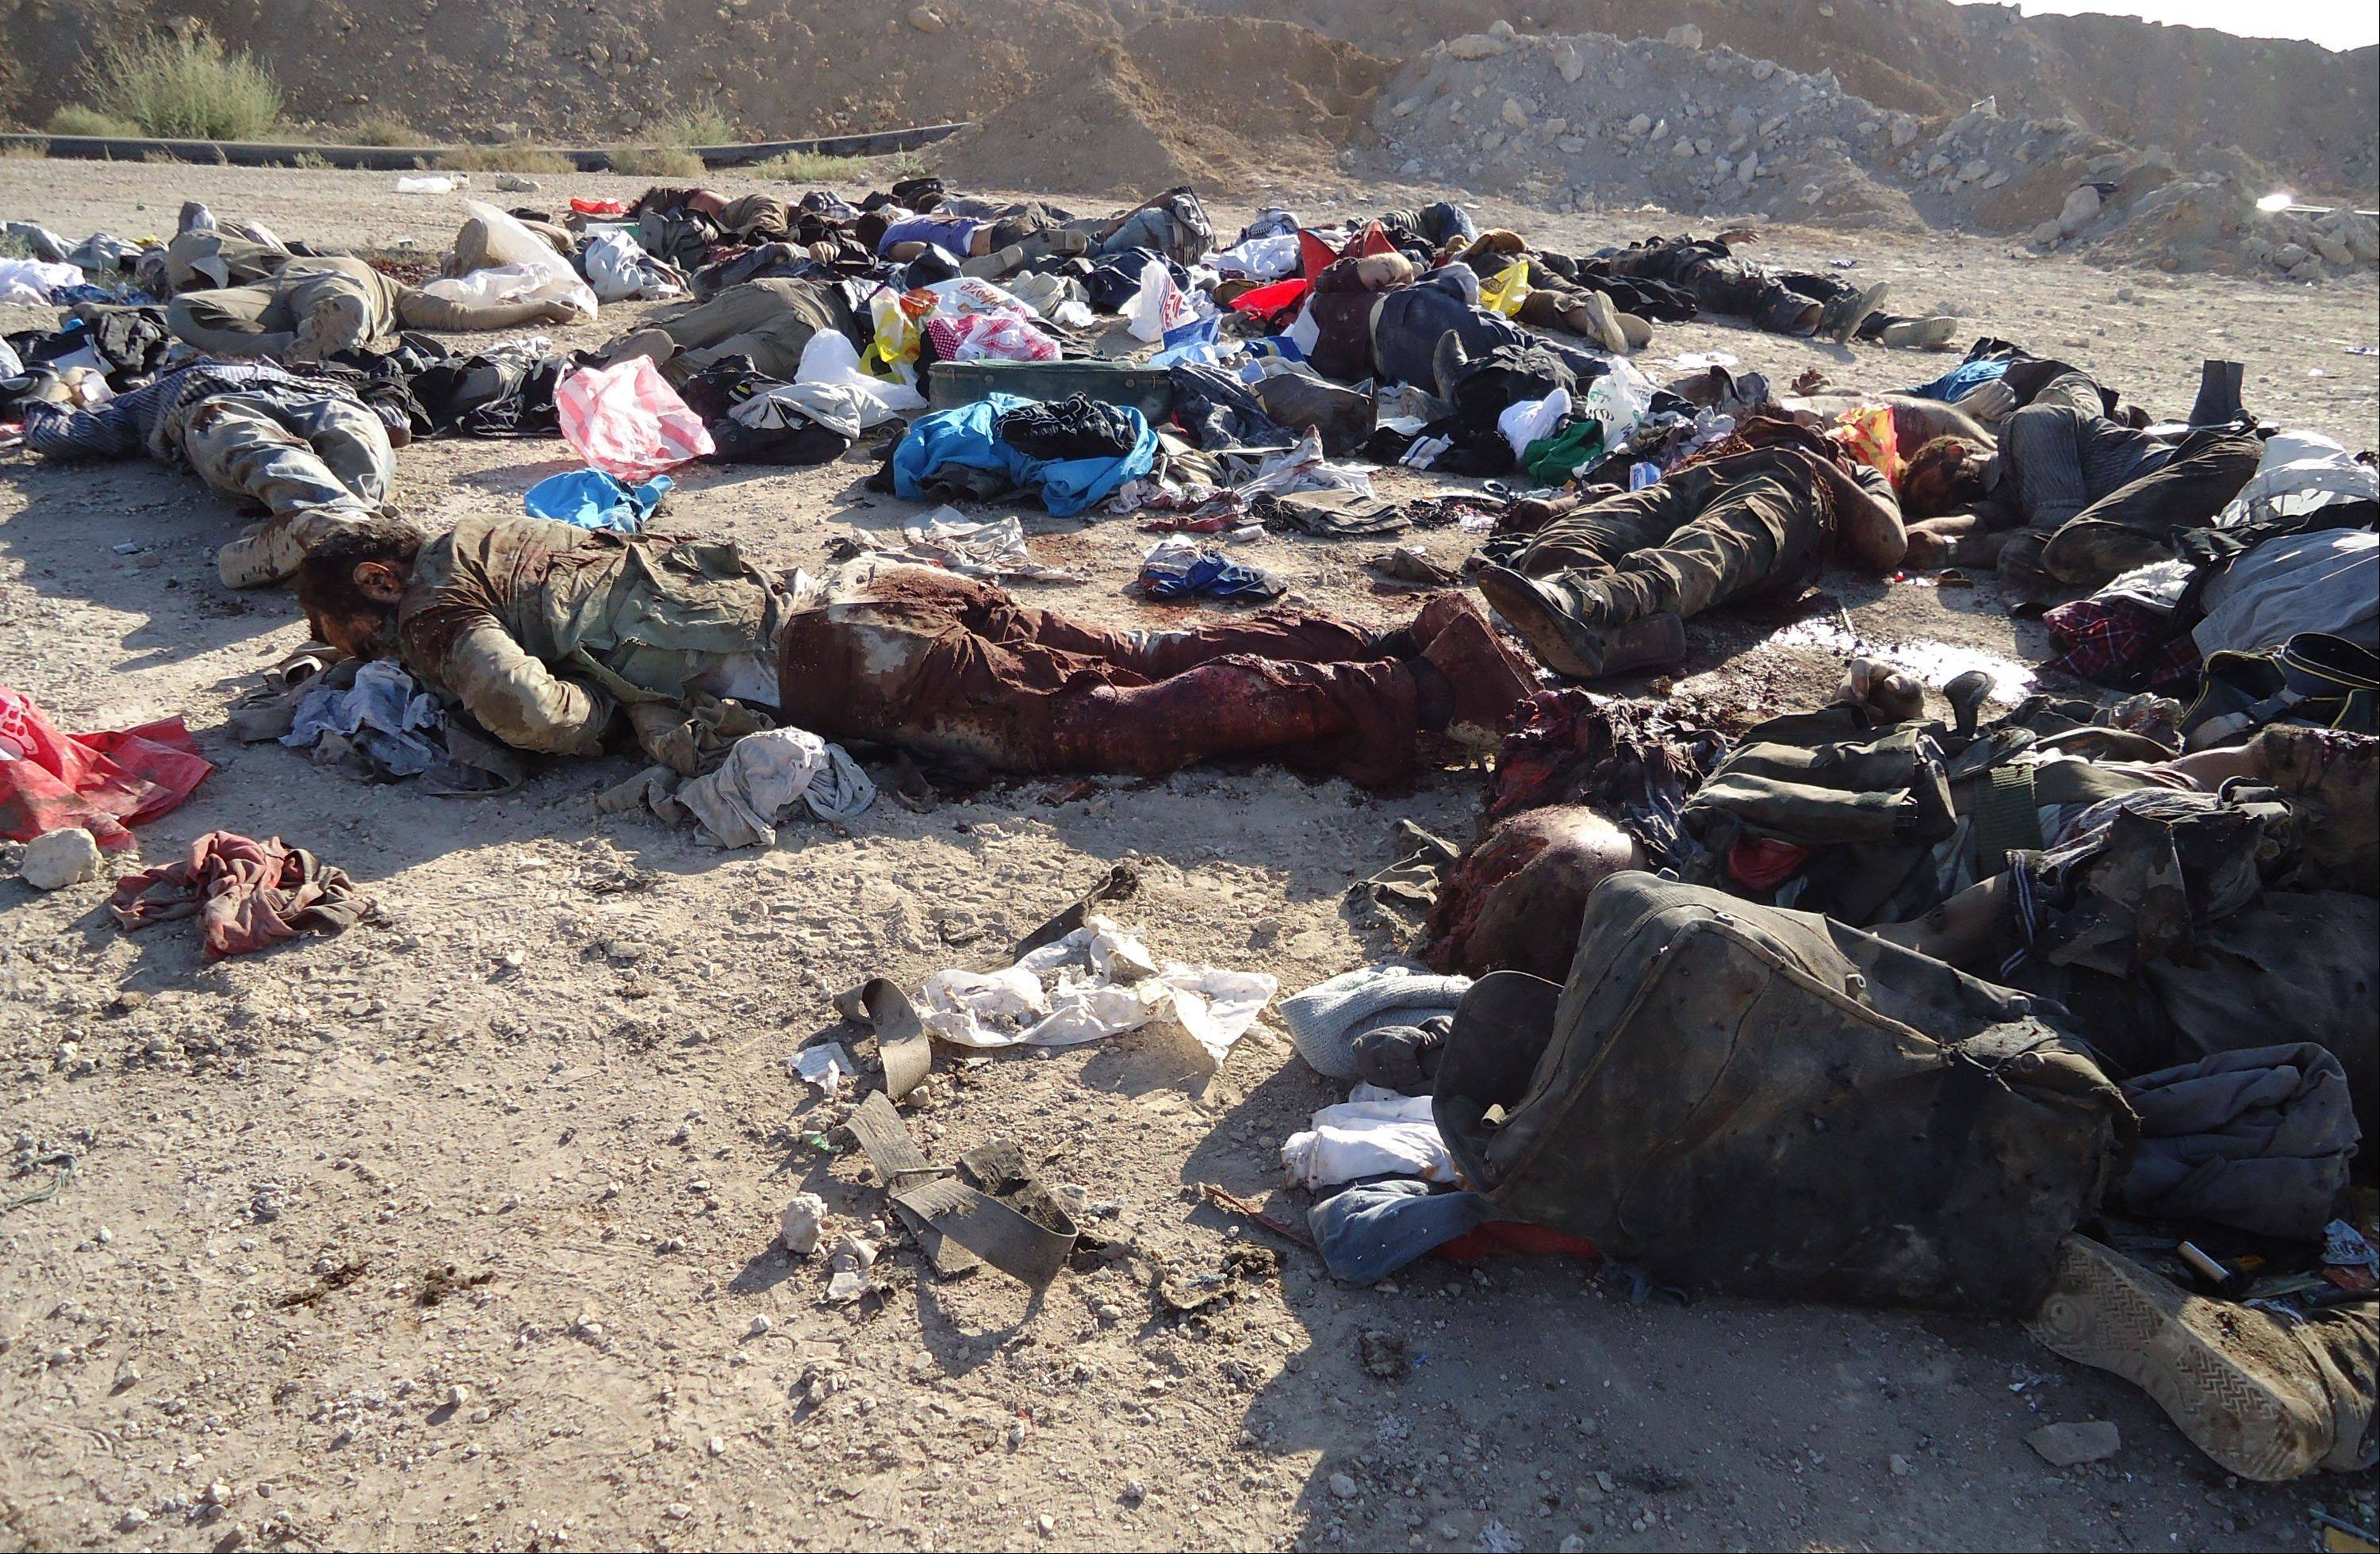 In this photo released by the Syrian official news agency SANA, dead bodies of Syrian rebels are seen on the ground, killed during ambush by Syrian forces near the Damascus suburb of Adra, Syria, Wednesday Aug. 7, 2013. Syrian government forces killed more than 60 rebels Wednesday in an ambush near Damascus, a blow to opposition fighters confronting a regime offensive in the capital, activists said.